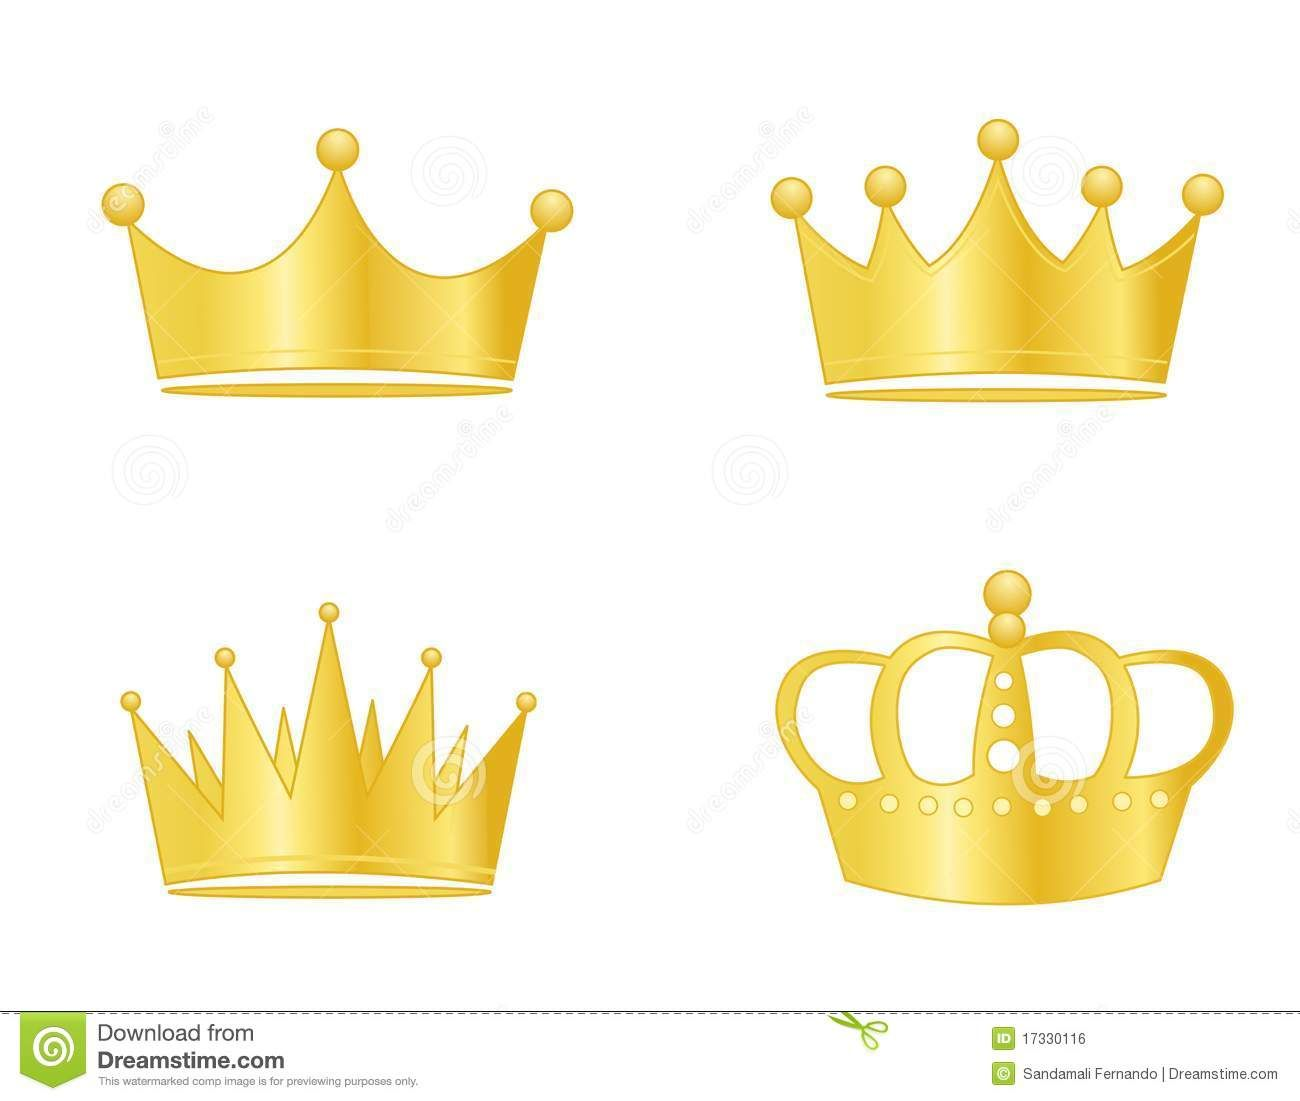 Images For > Gold Crown Clipart.